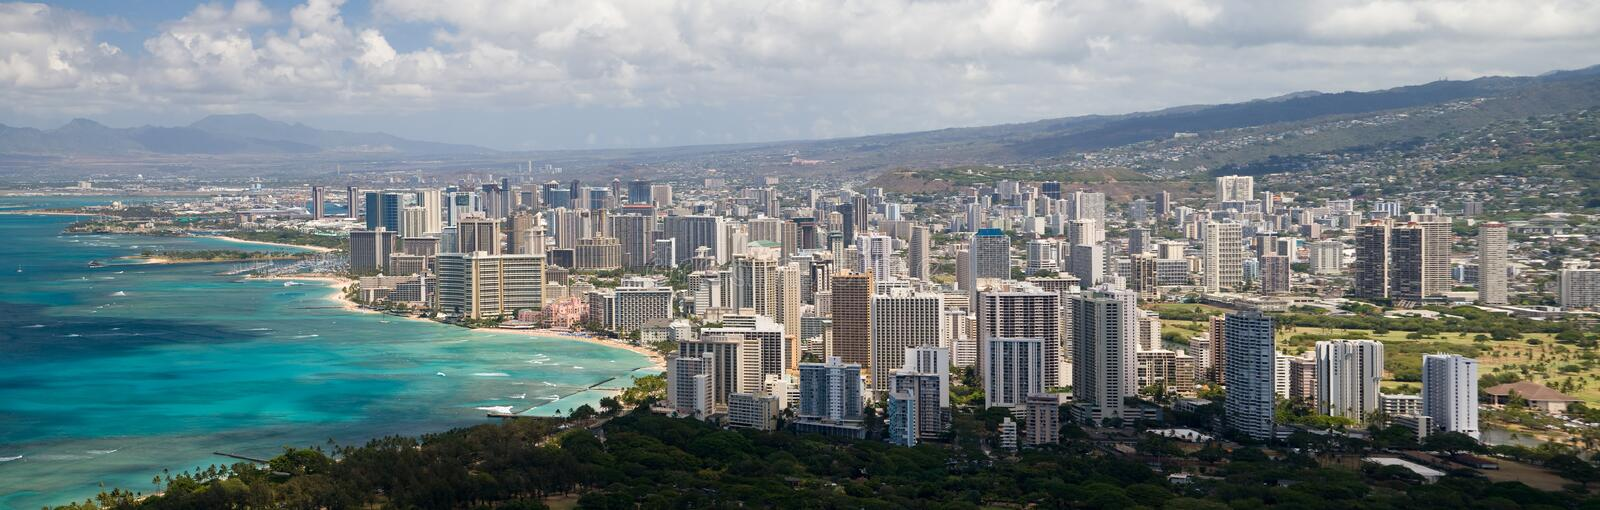 Honolulu-Panorama lizenzfreies stockfoto